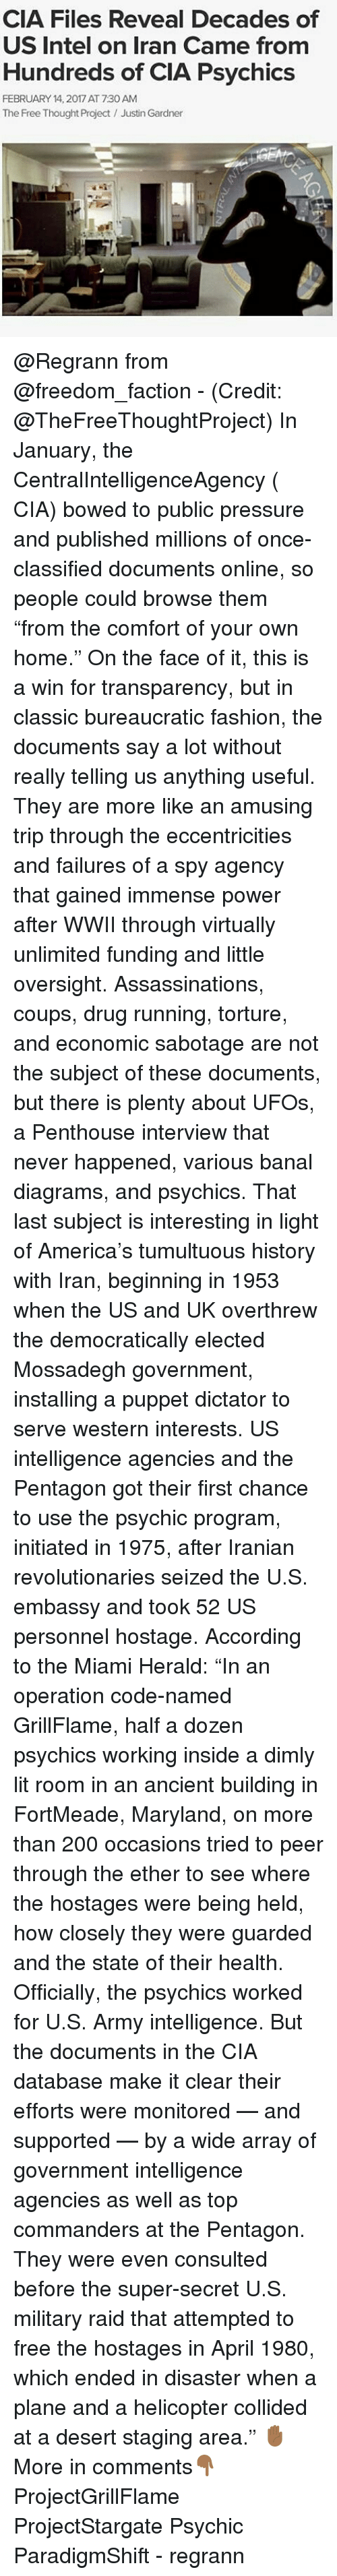 CIA Files Reveal Decades of US Intel on Iran Came From Hundreds of